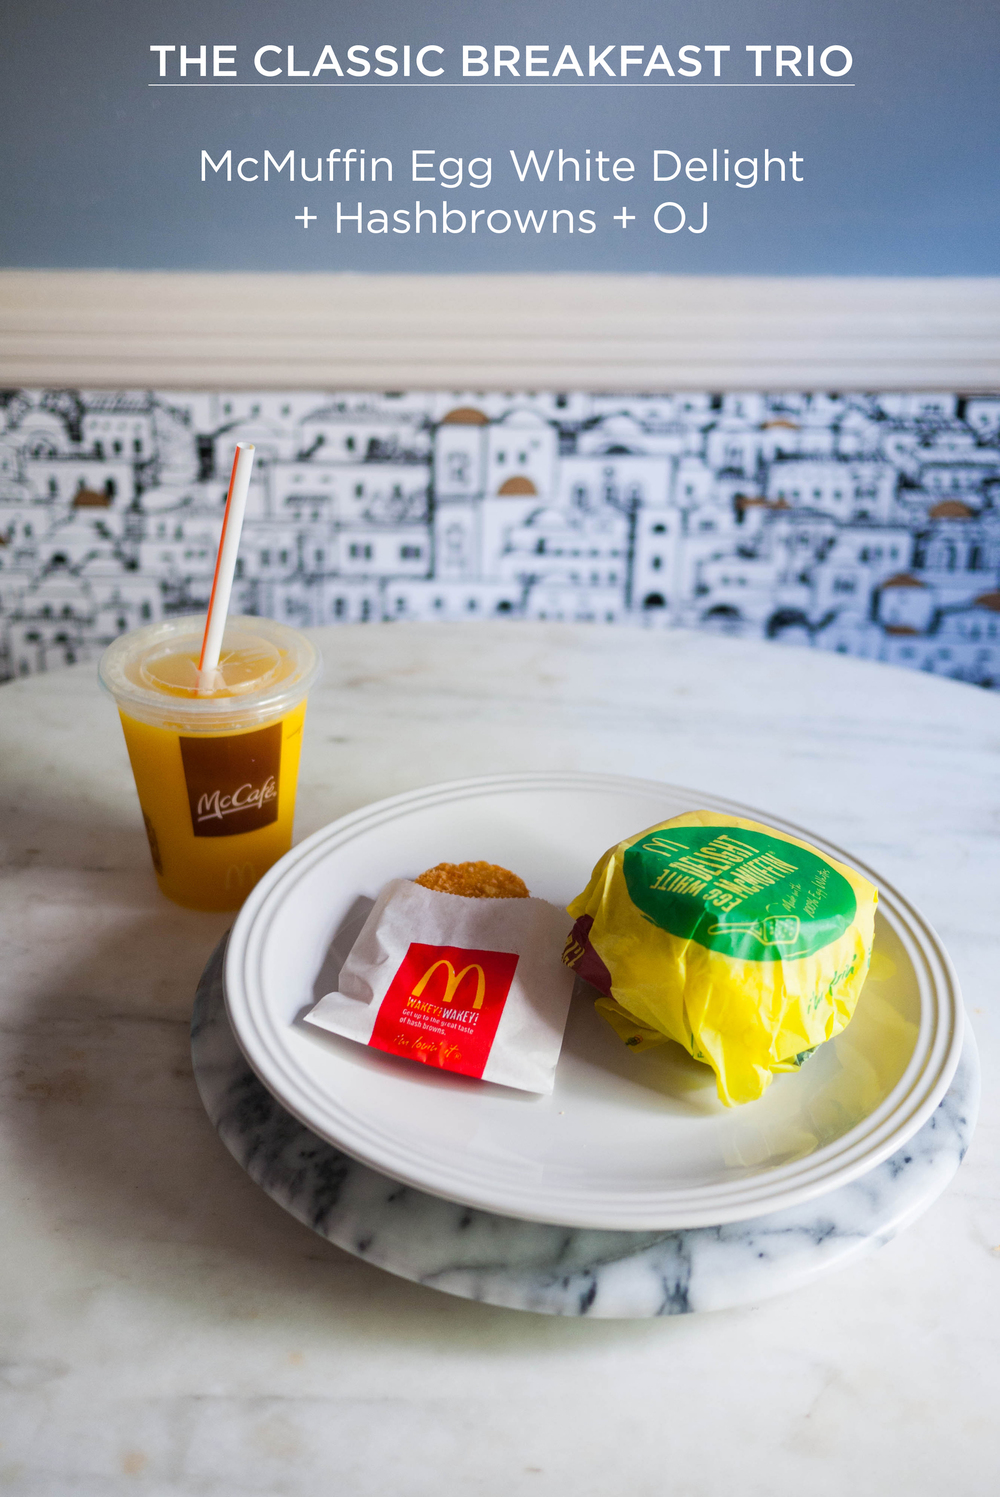 mcdonalds-all-day-breakfast-2.jpg